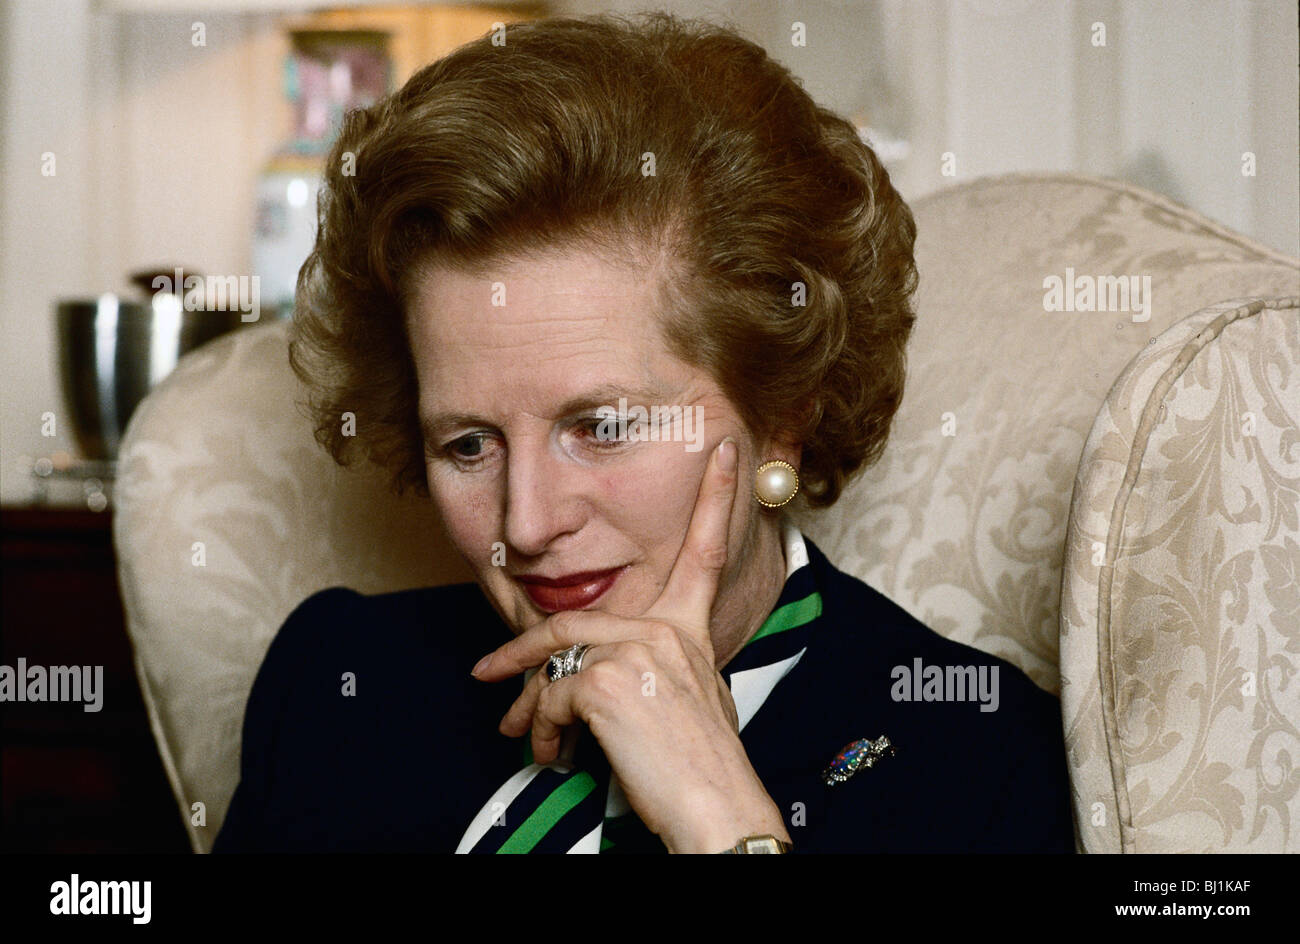 Prime Minister Margaret Thatcher pensive expression private session in her sitting room at 10 Downing Street in - Stock Image